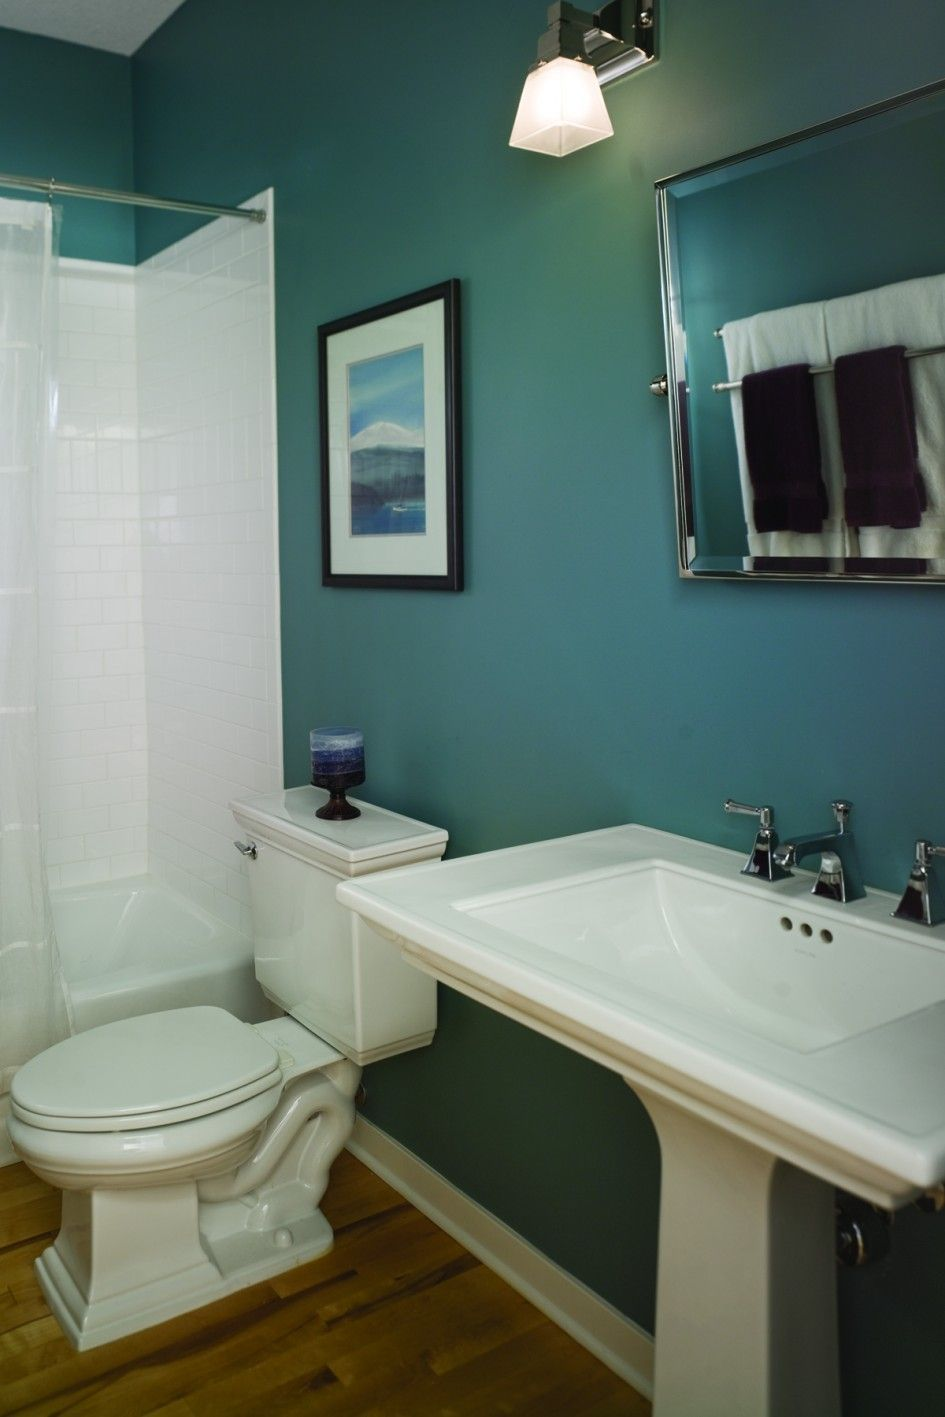 Pin By Sandy Feland On Mobile Home Remodeling Ideas Manufactured Home Remodel Remodeling Mobile Homes Mobile Home Bathroom